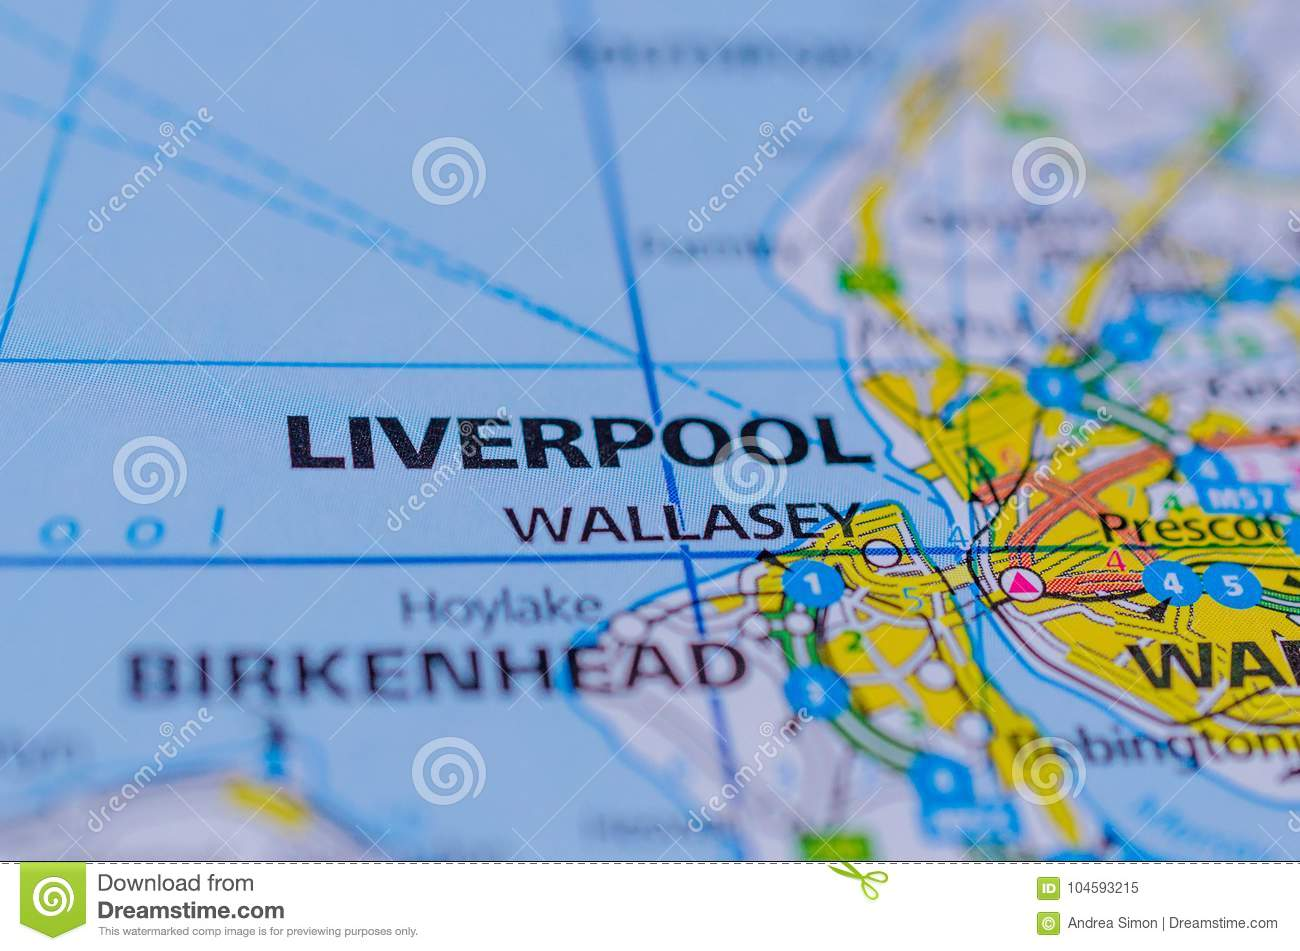 Liverpool on map